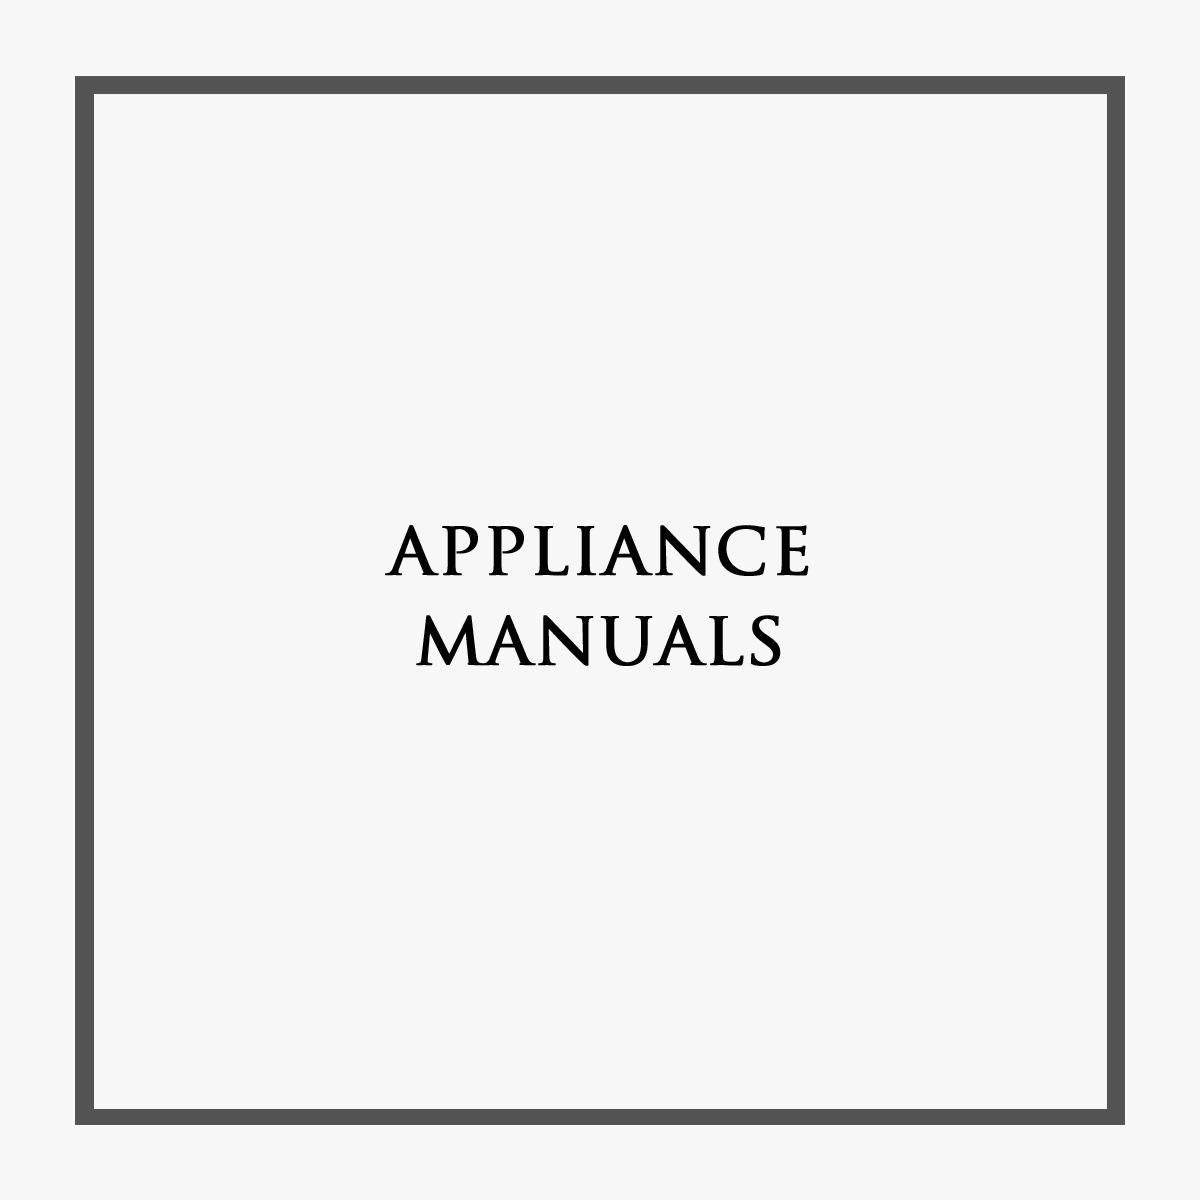 Arch Cape Oceanside Escape Appliance Manuals